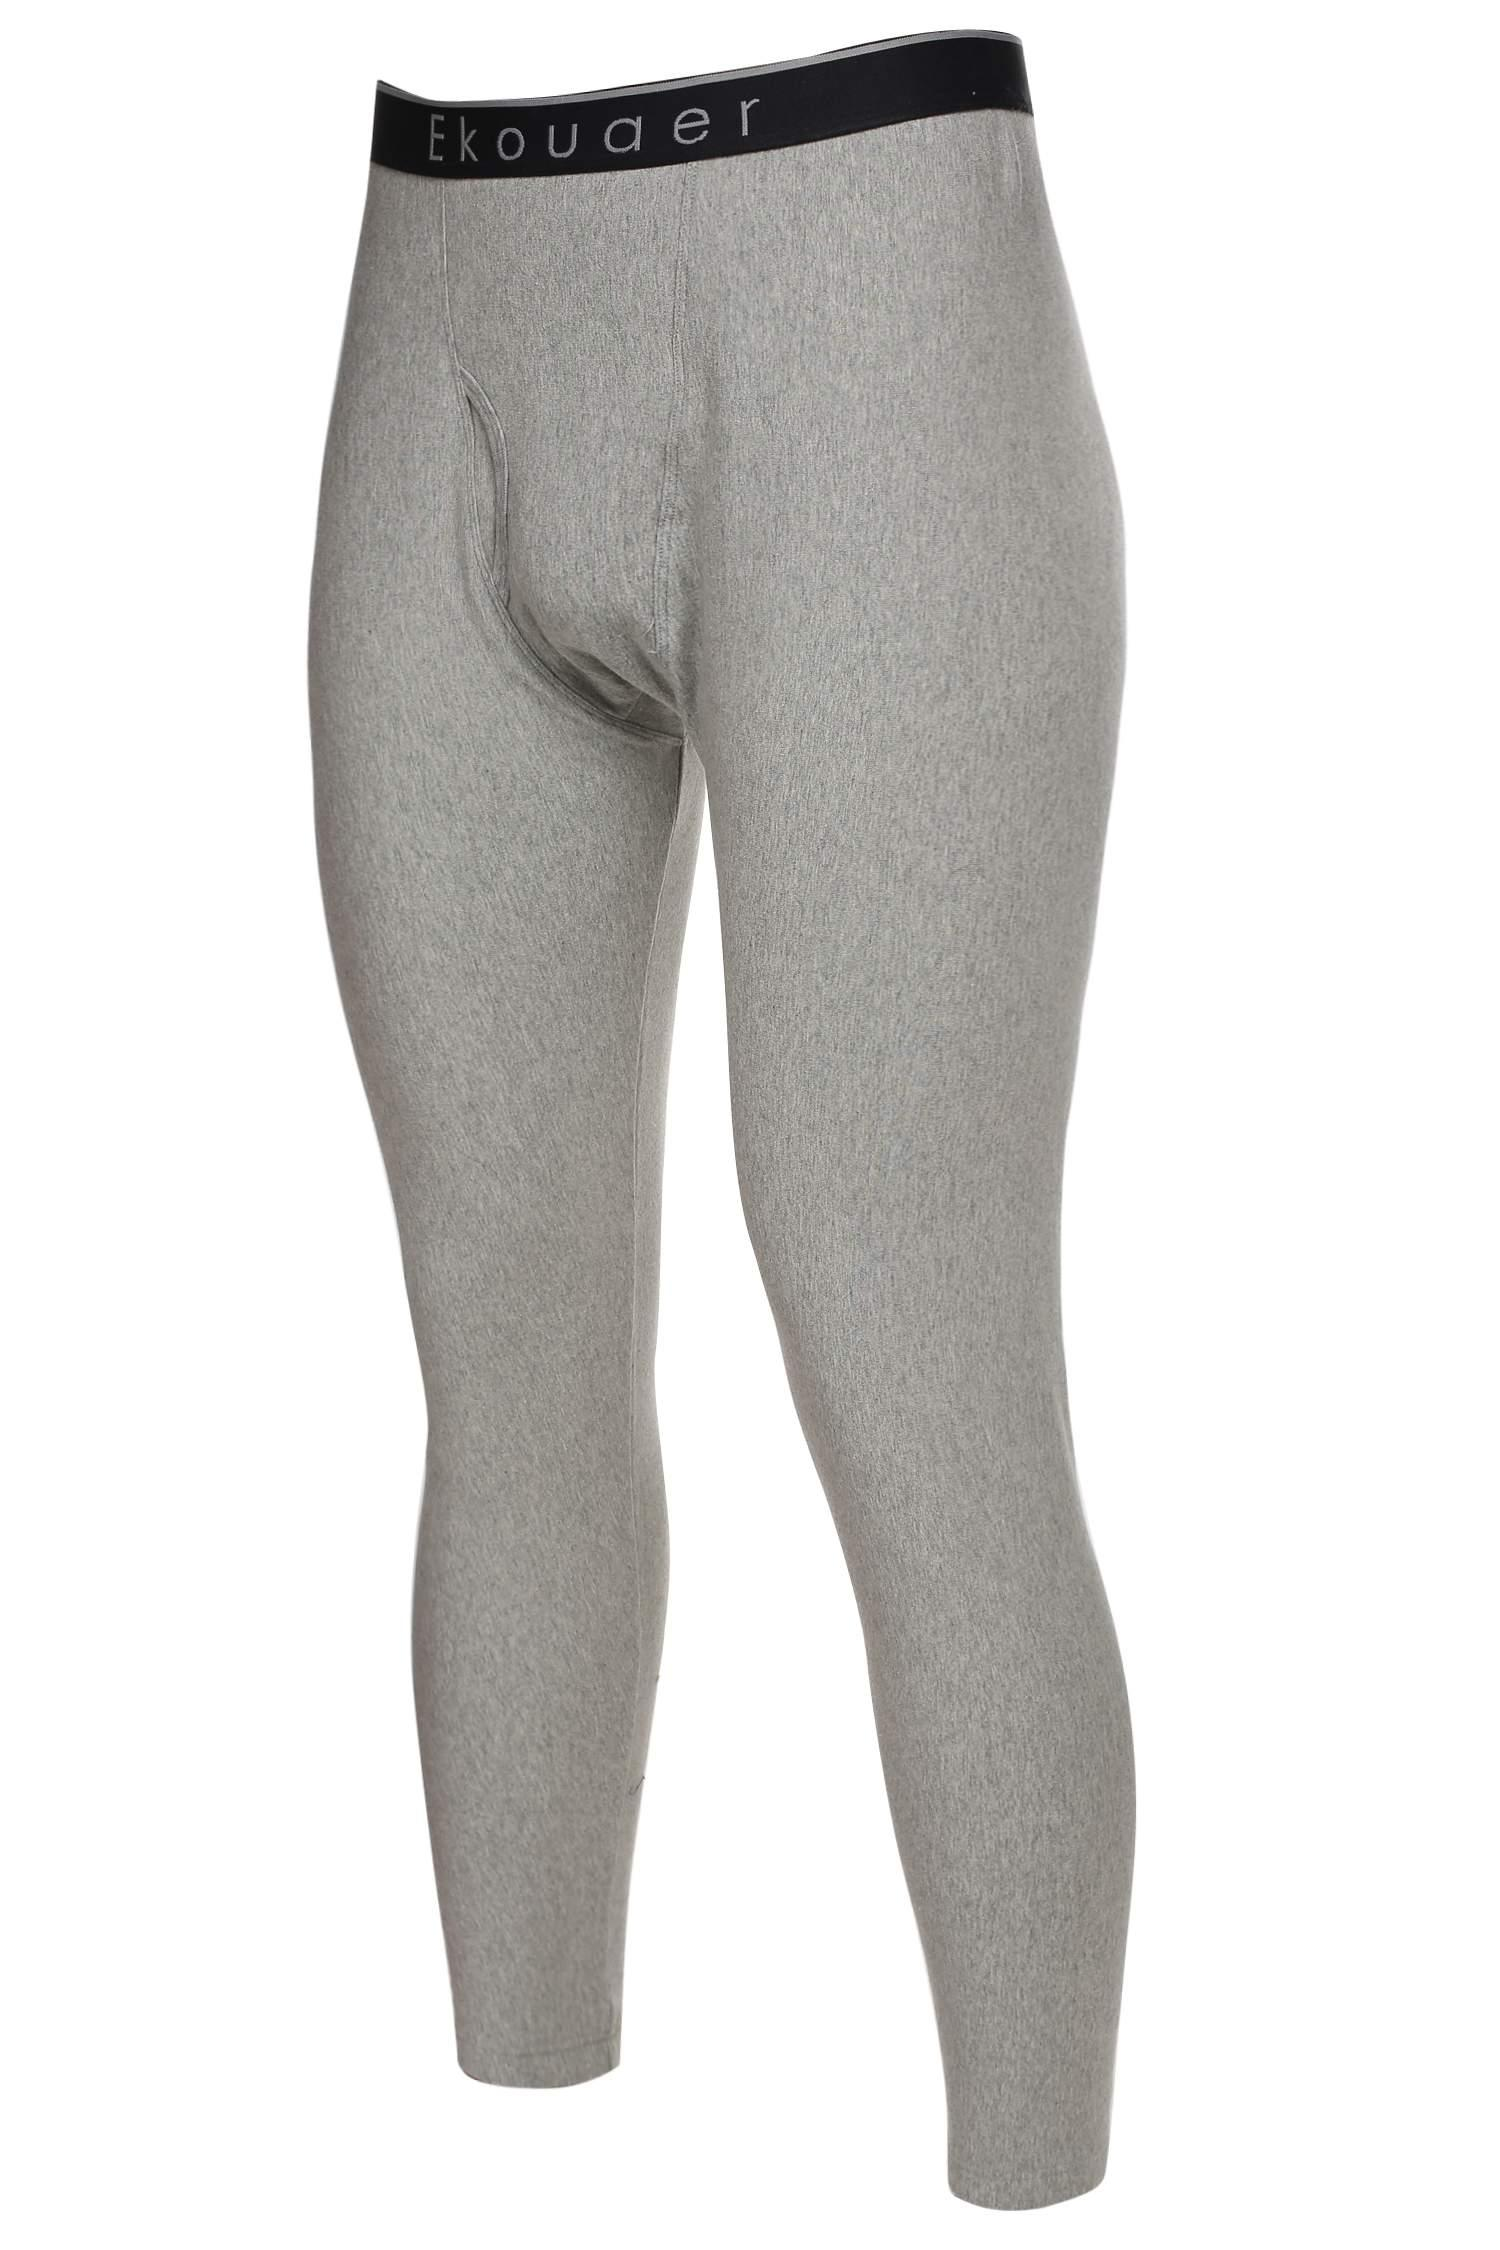 Mens Warm Thermal Underwear Pants Bottoms Mid-Weight by Long Underwear